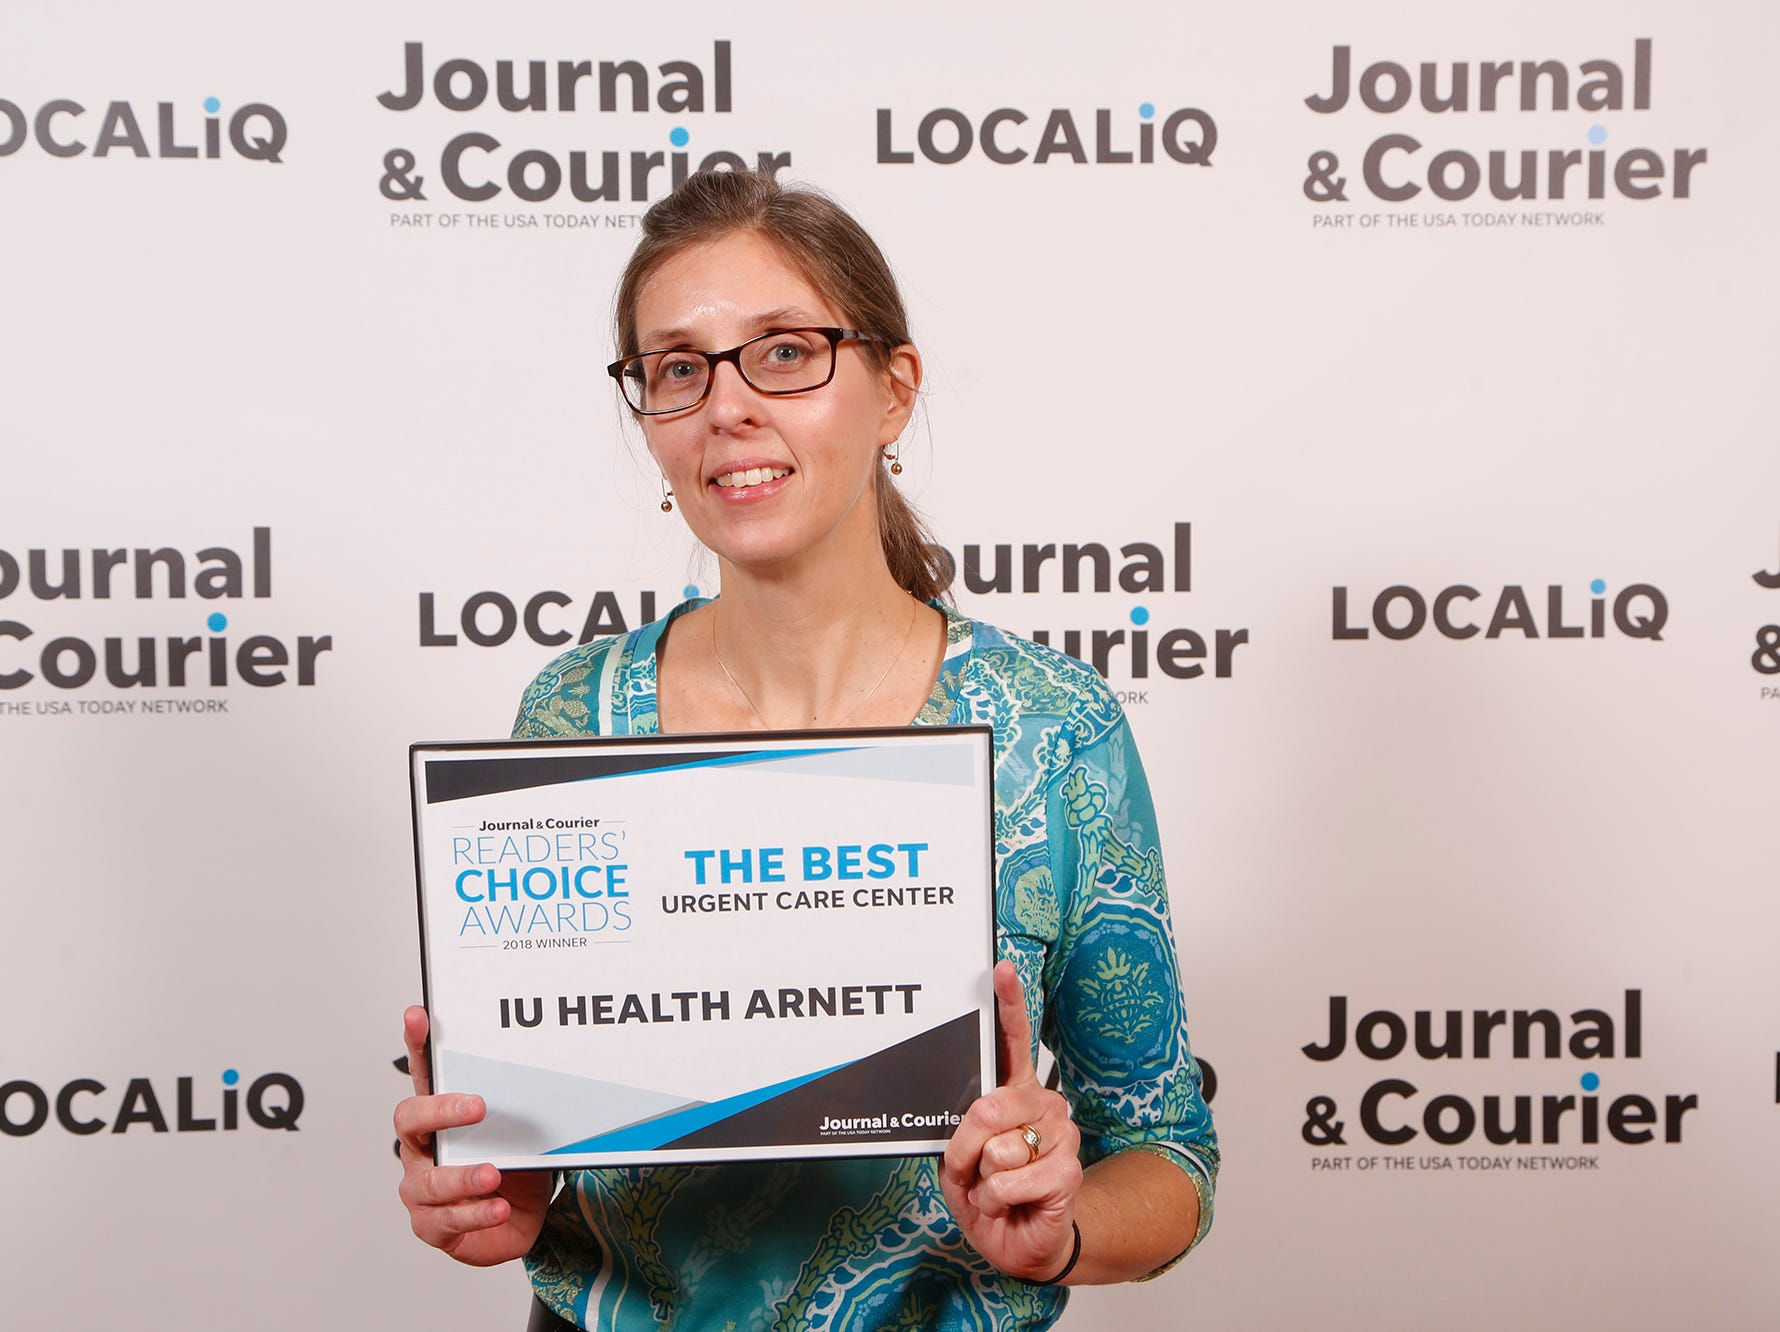 IU Health Arnett, Journal & Courier Readers' Choice Awards winner for the best urgent care center.